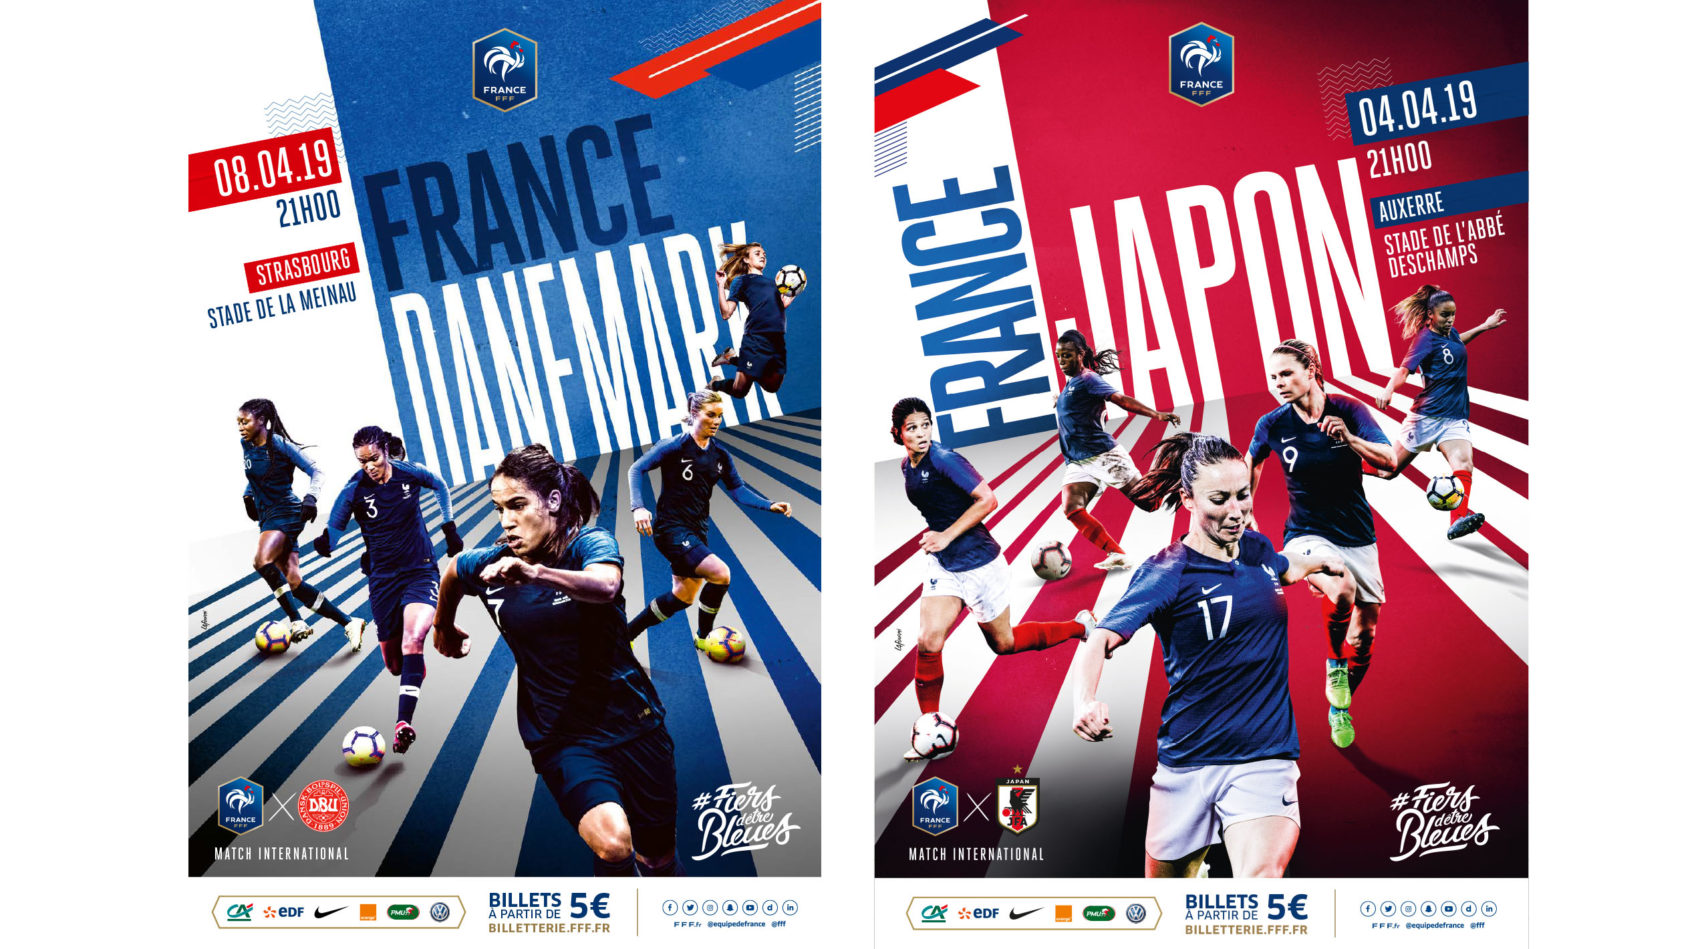 Projet_project_FFF_federation_francaise_football_french_federation_Coupe_du_Monde_Feminine_FIFA_France_2019_TM_world_cup_women_KV